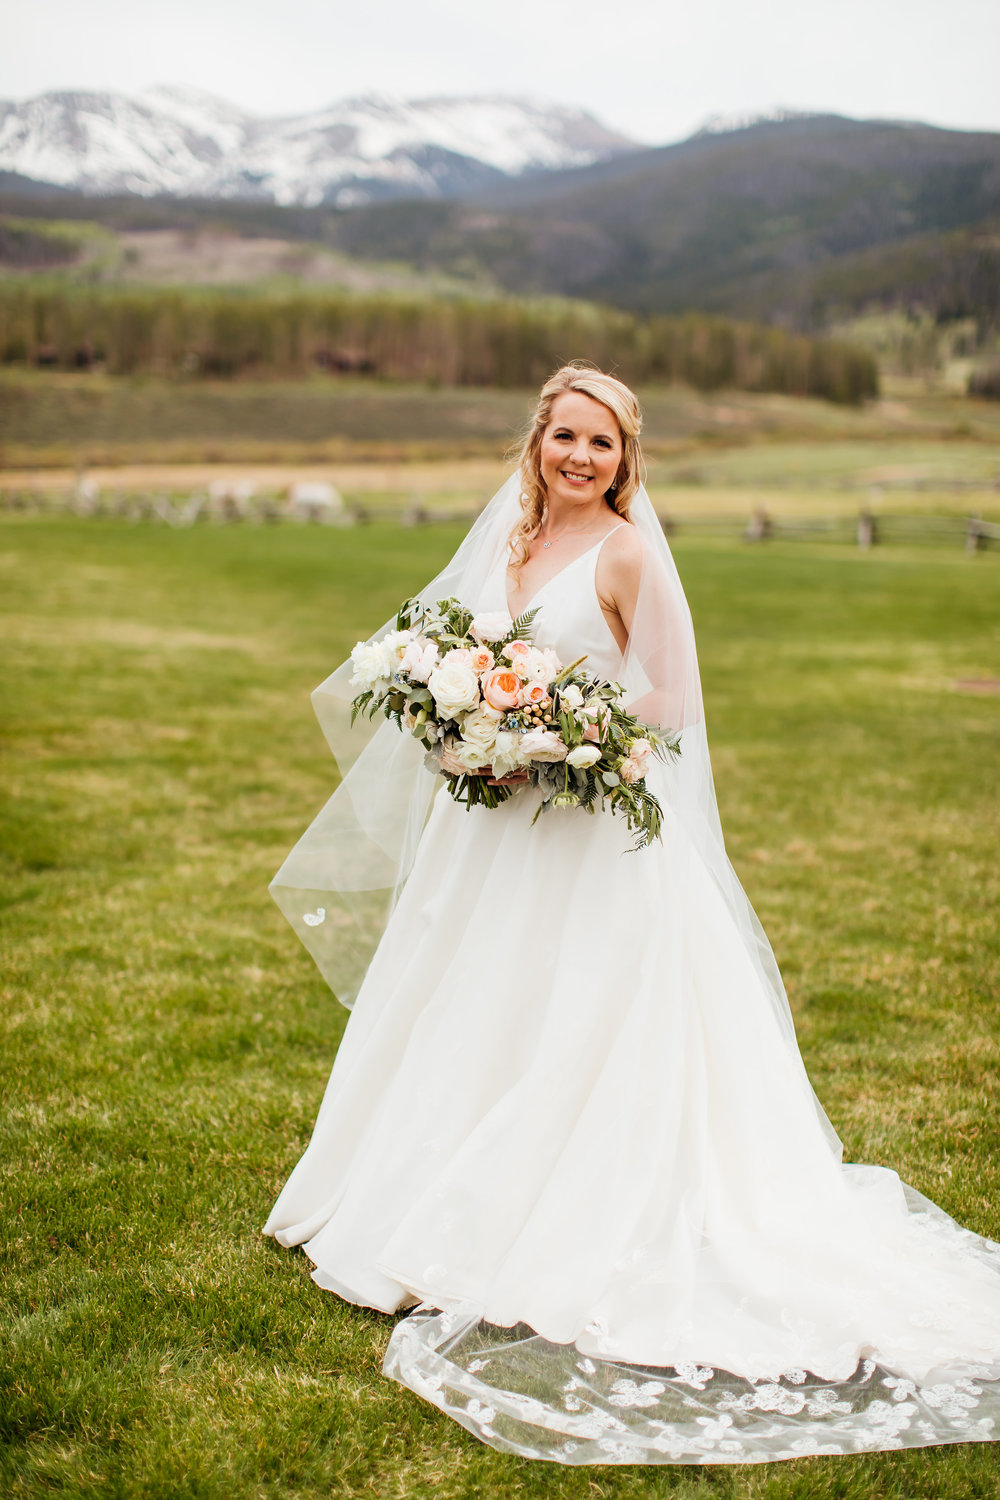 Erika | Devil's Thumb Ranch | May 2018 | Mallory Munson Photography